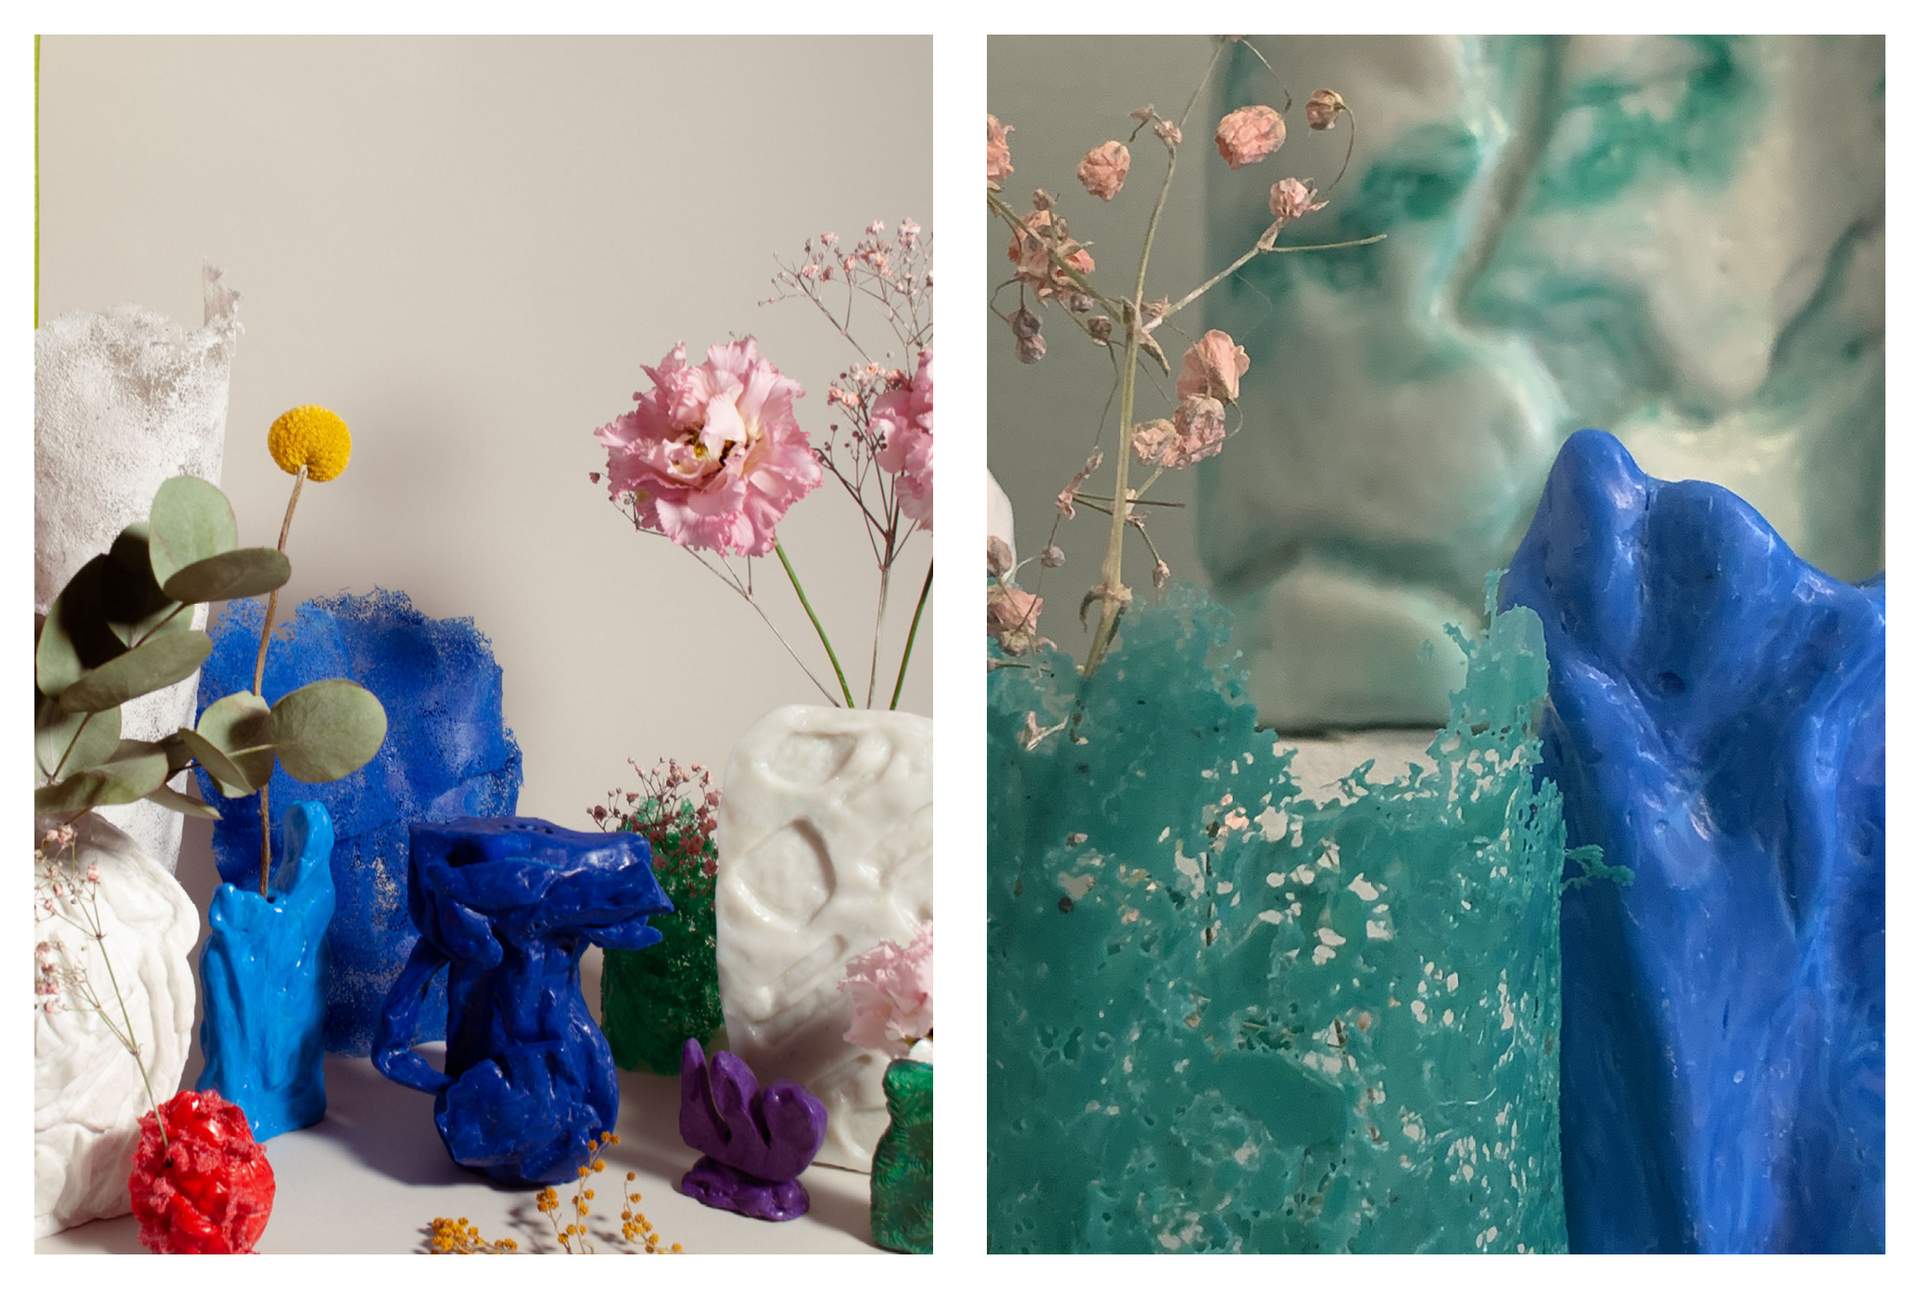 Recycled HDPE objects: my neighbour's mementos